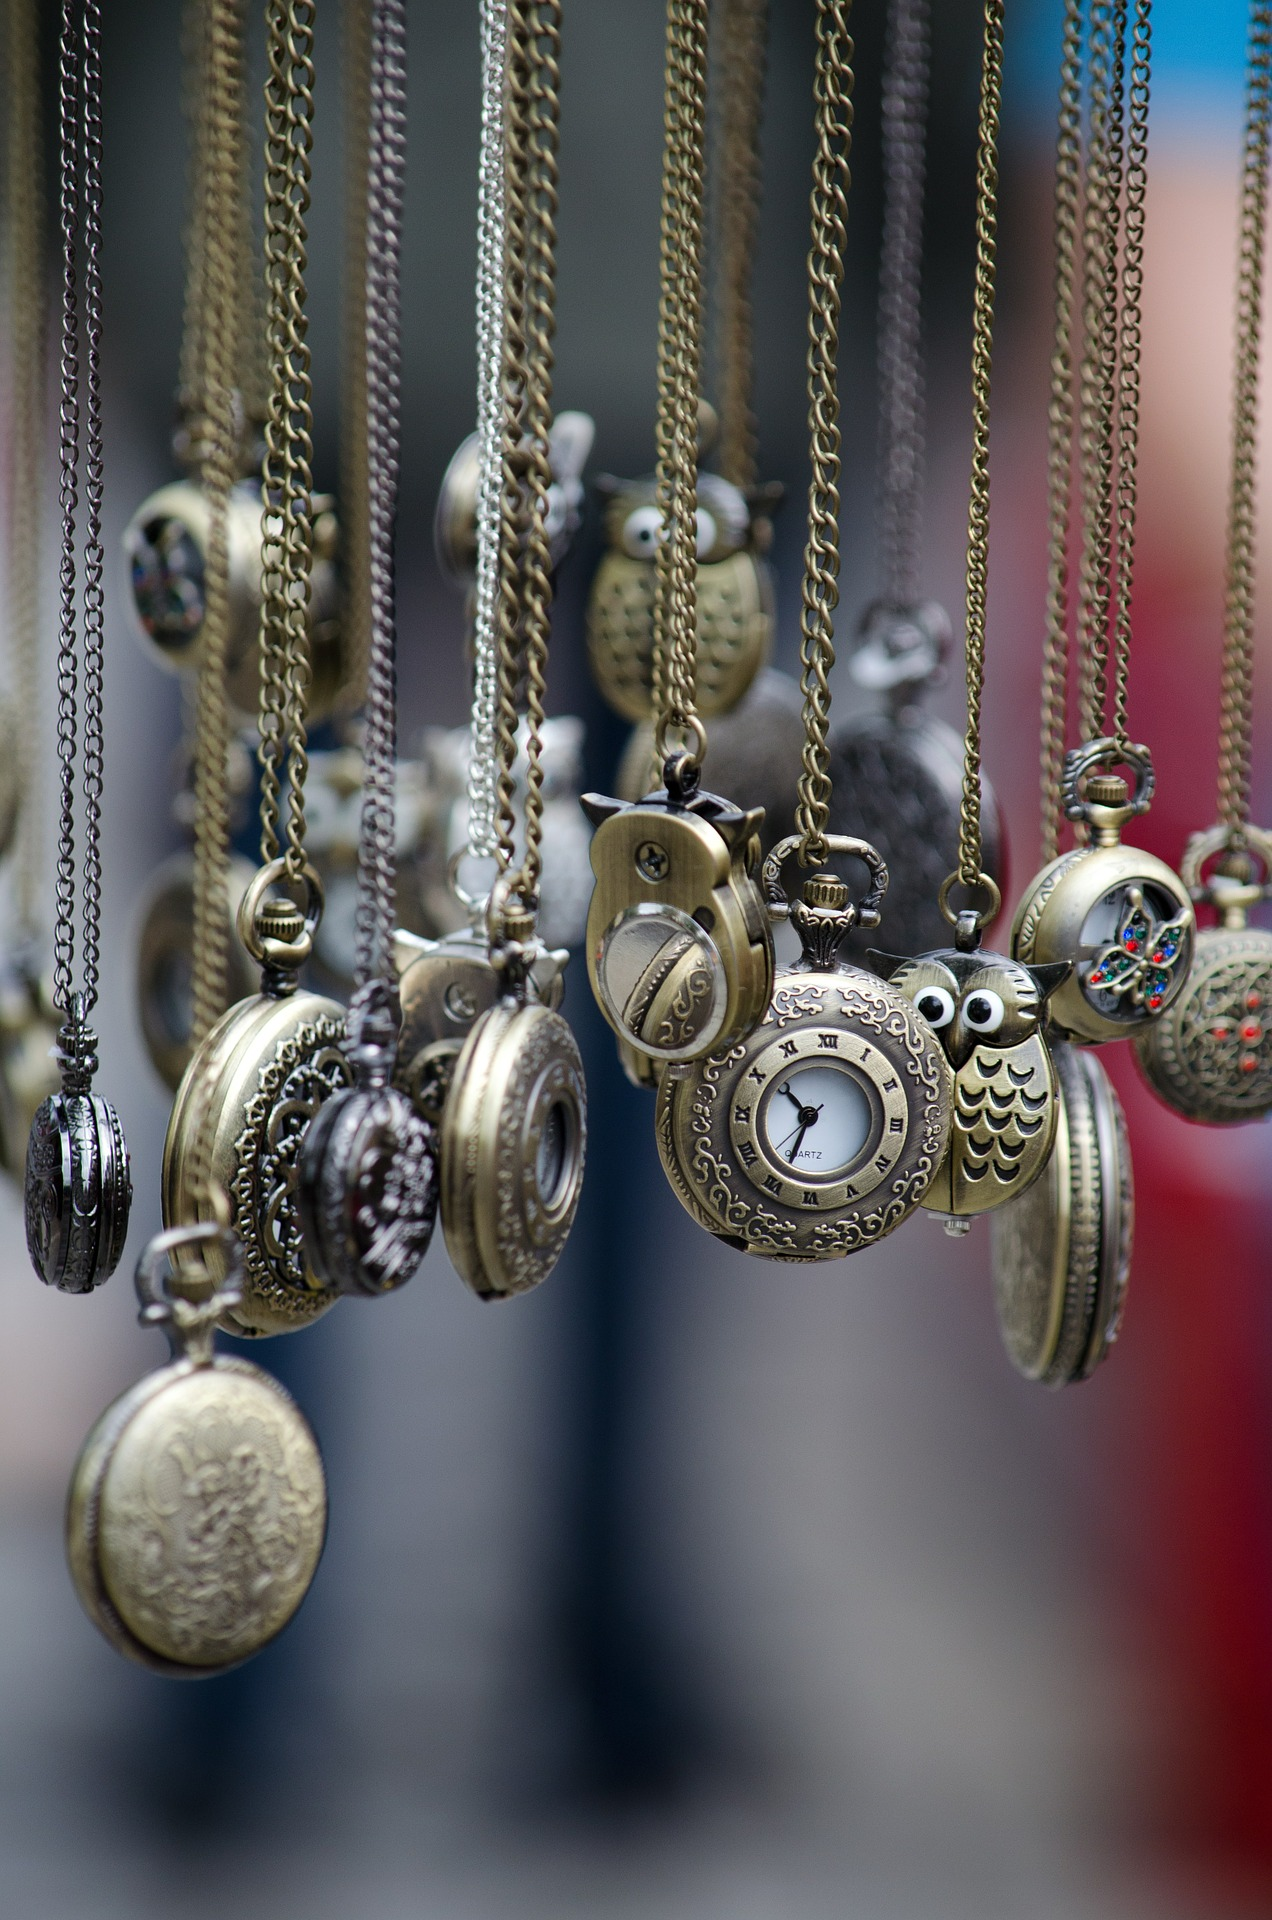 pocket_watches_436567_1920.jpg